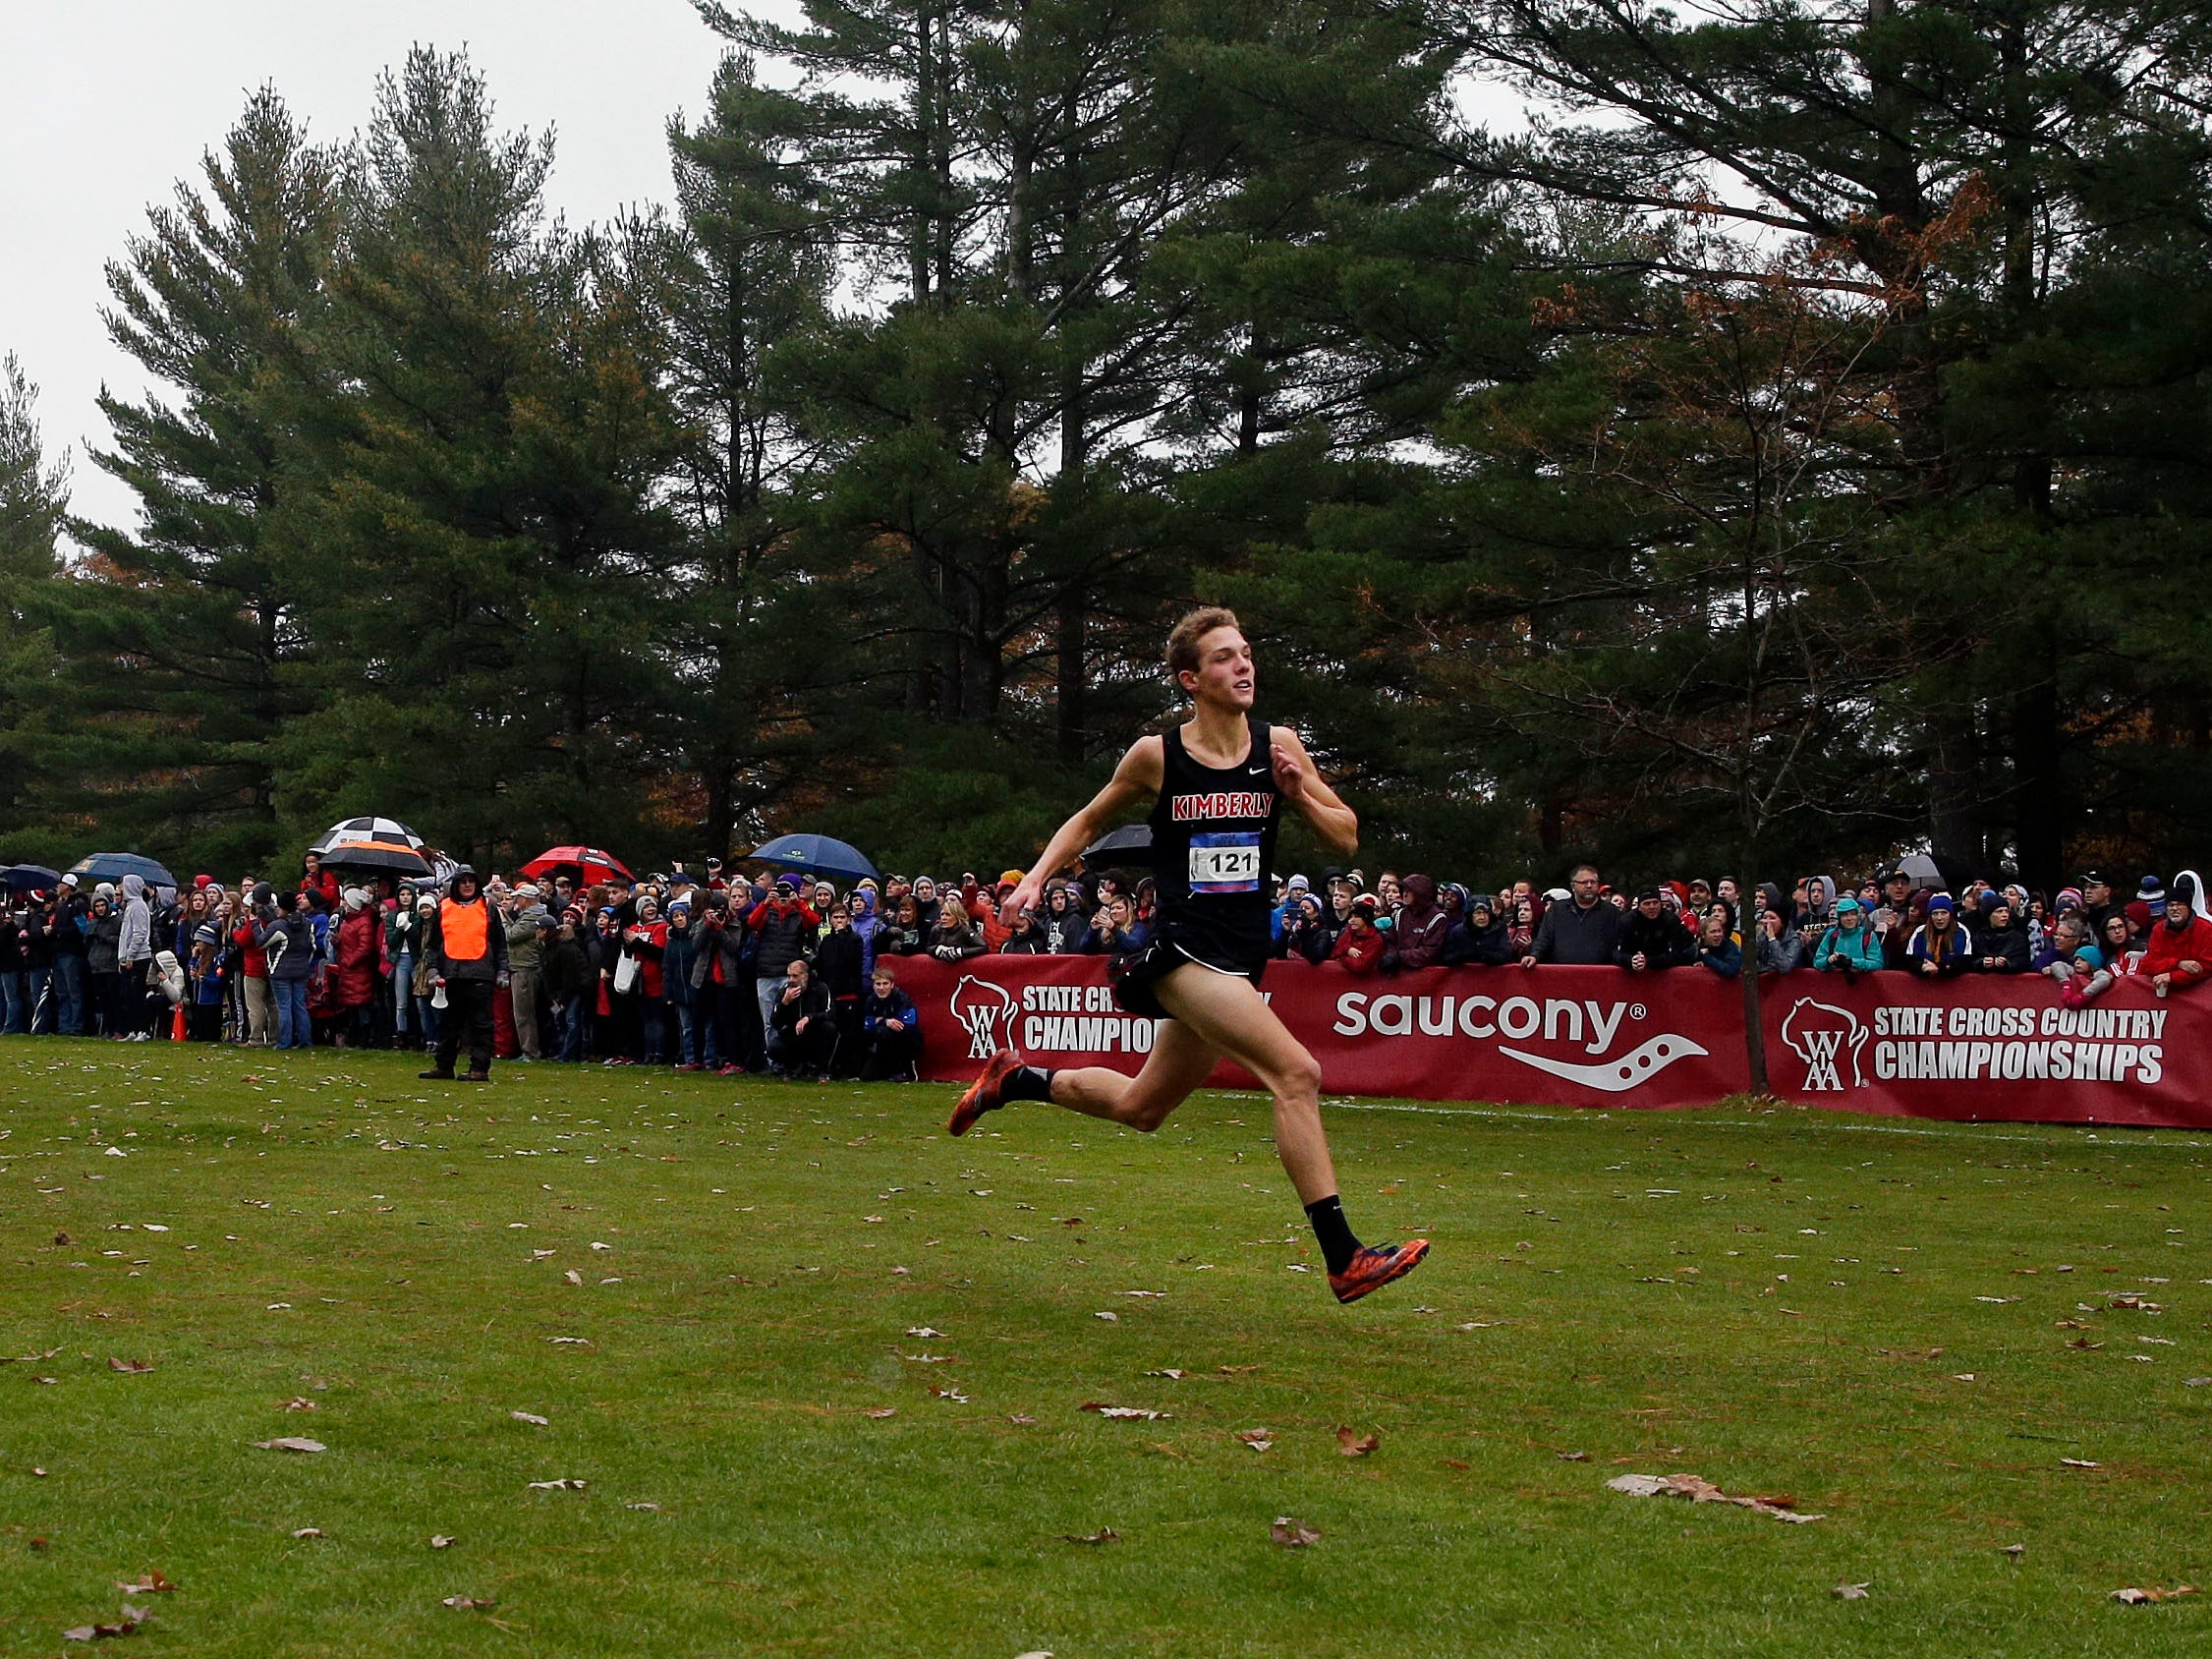 Rowen Ellenberg of Kimberly finishes at the 2018 WIAA Cross Country State Meet Saturday, October 27, 2018, at the Ridges Golf Course in Wisconsin Rapids, Wis.Ron Page/USA TODAY NETWORK-Wisconsin